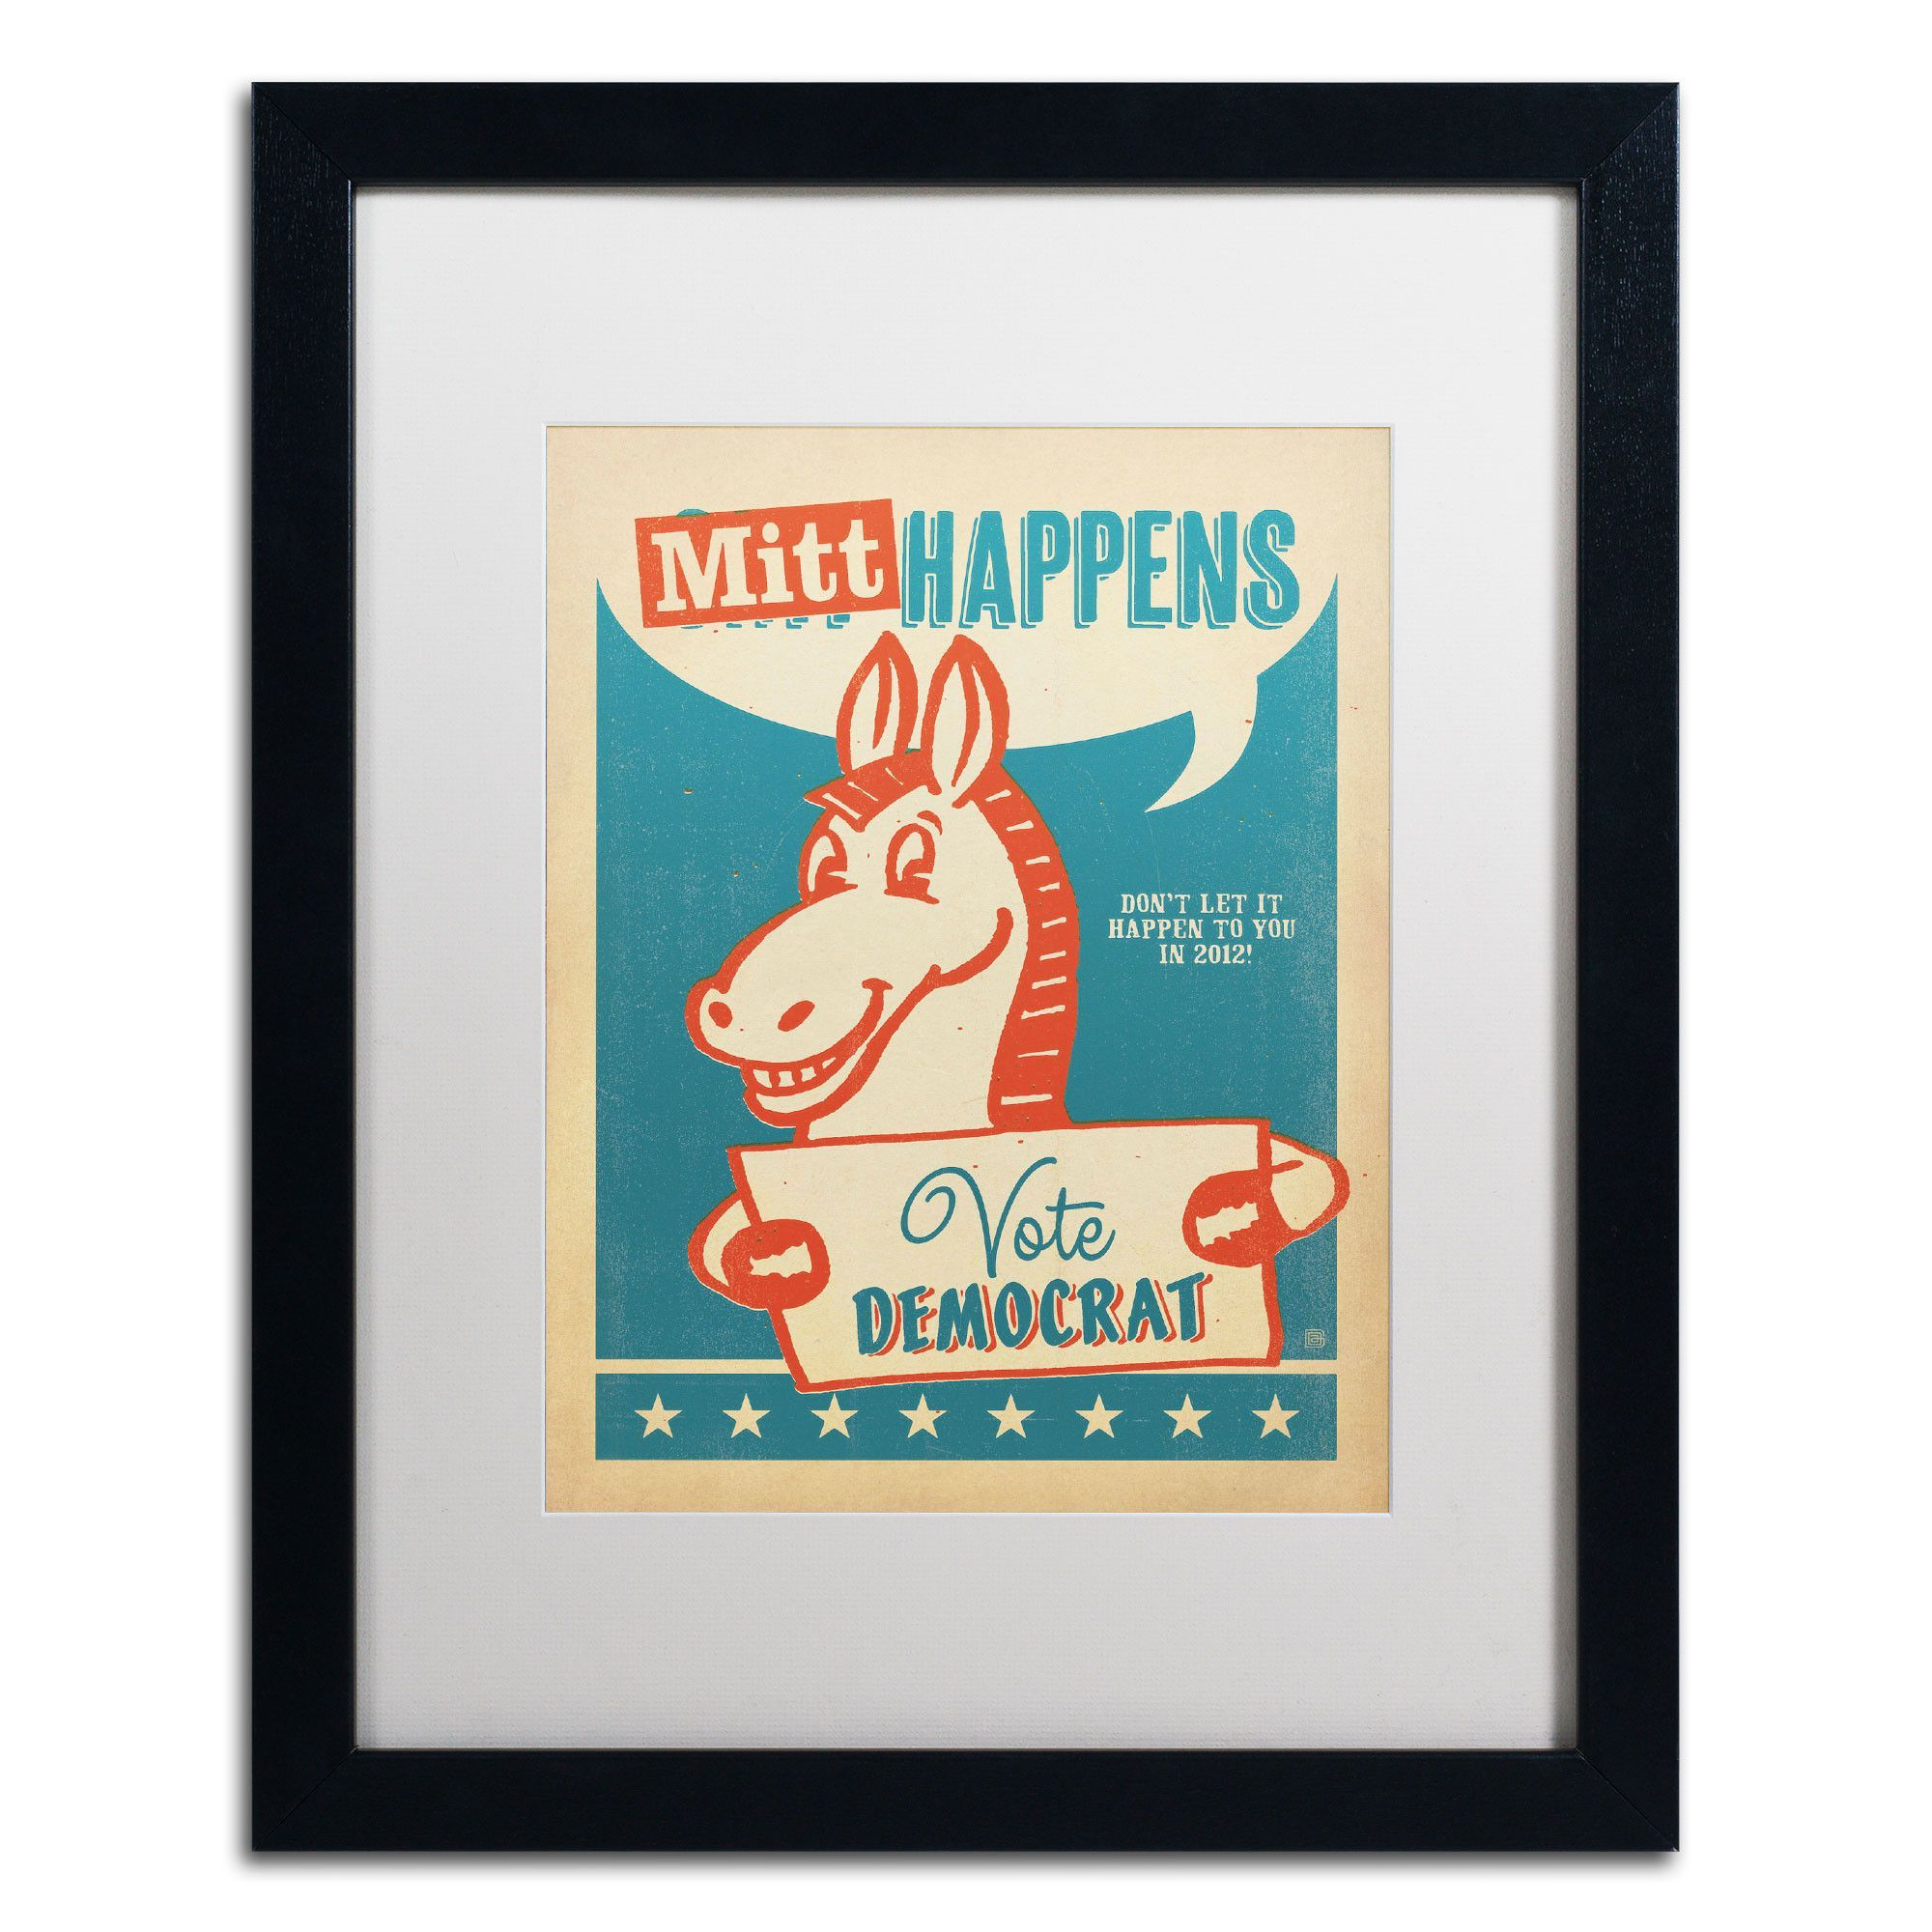 'Mitt Happens' by Anderson Design Group Framed Graphic Art